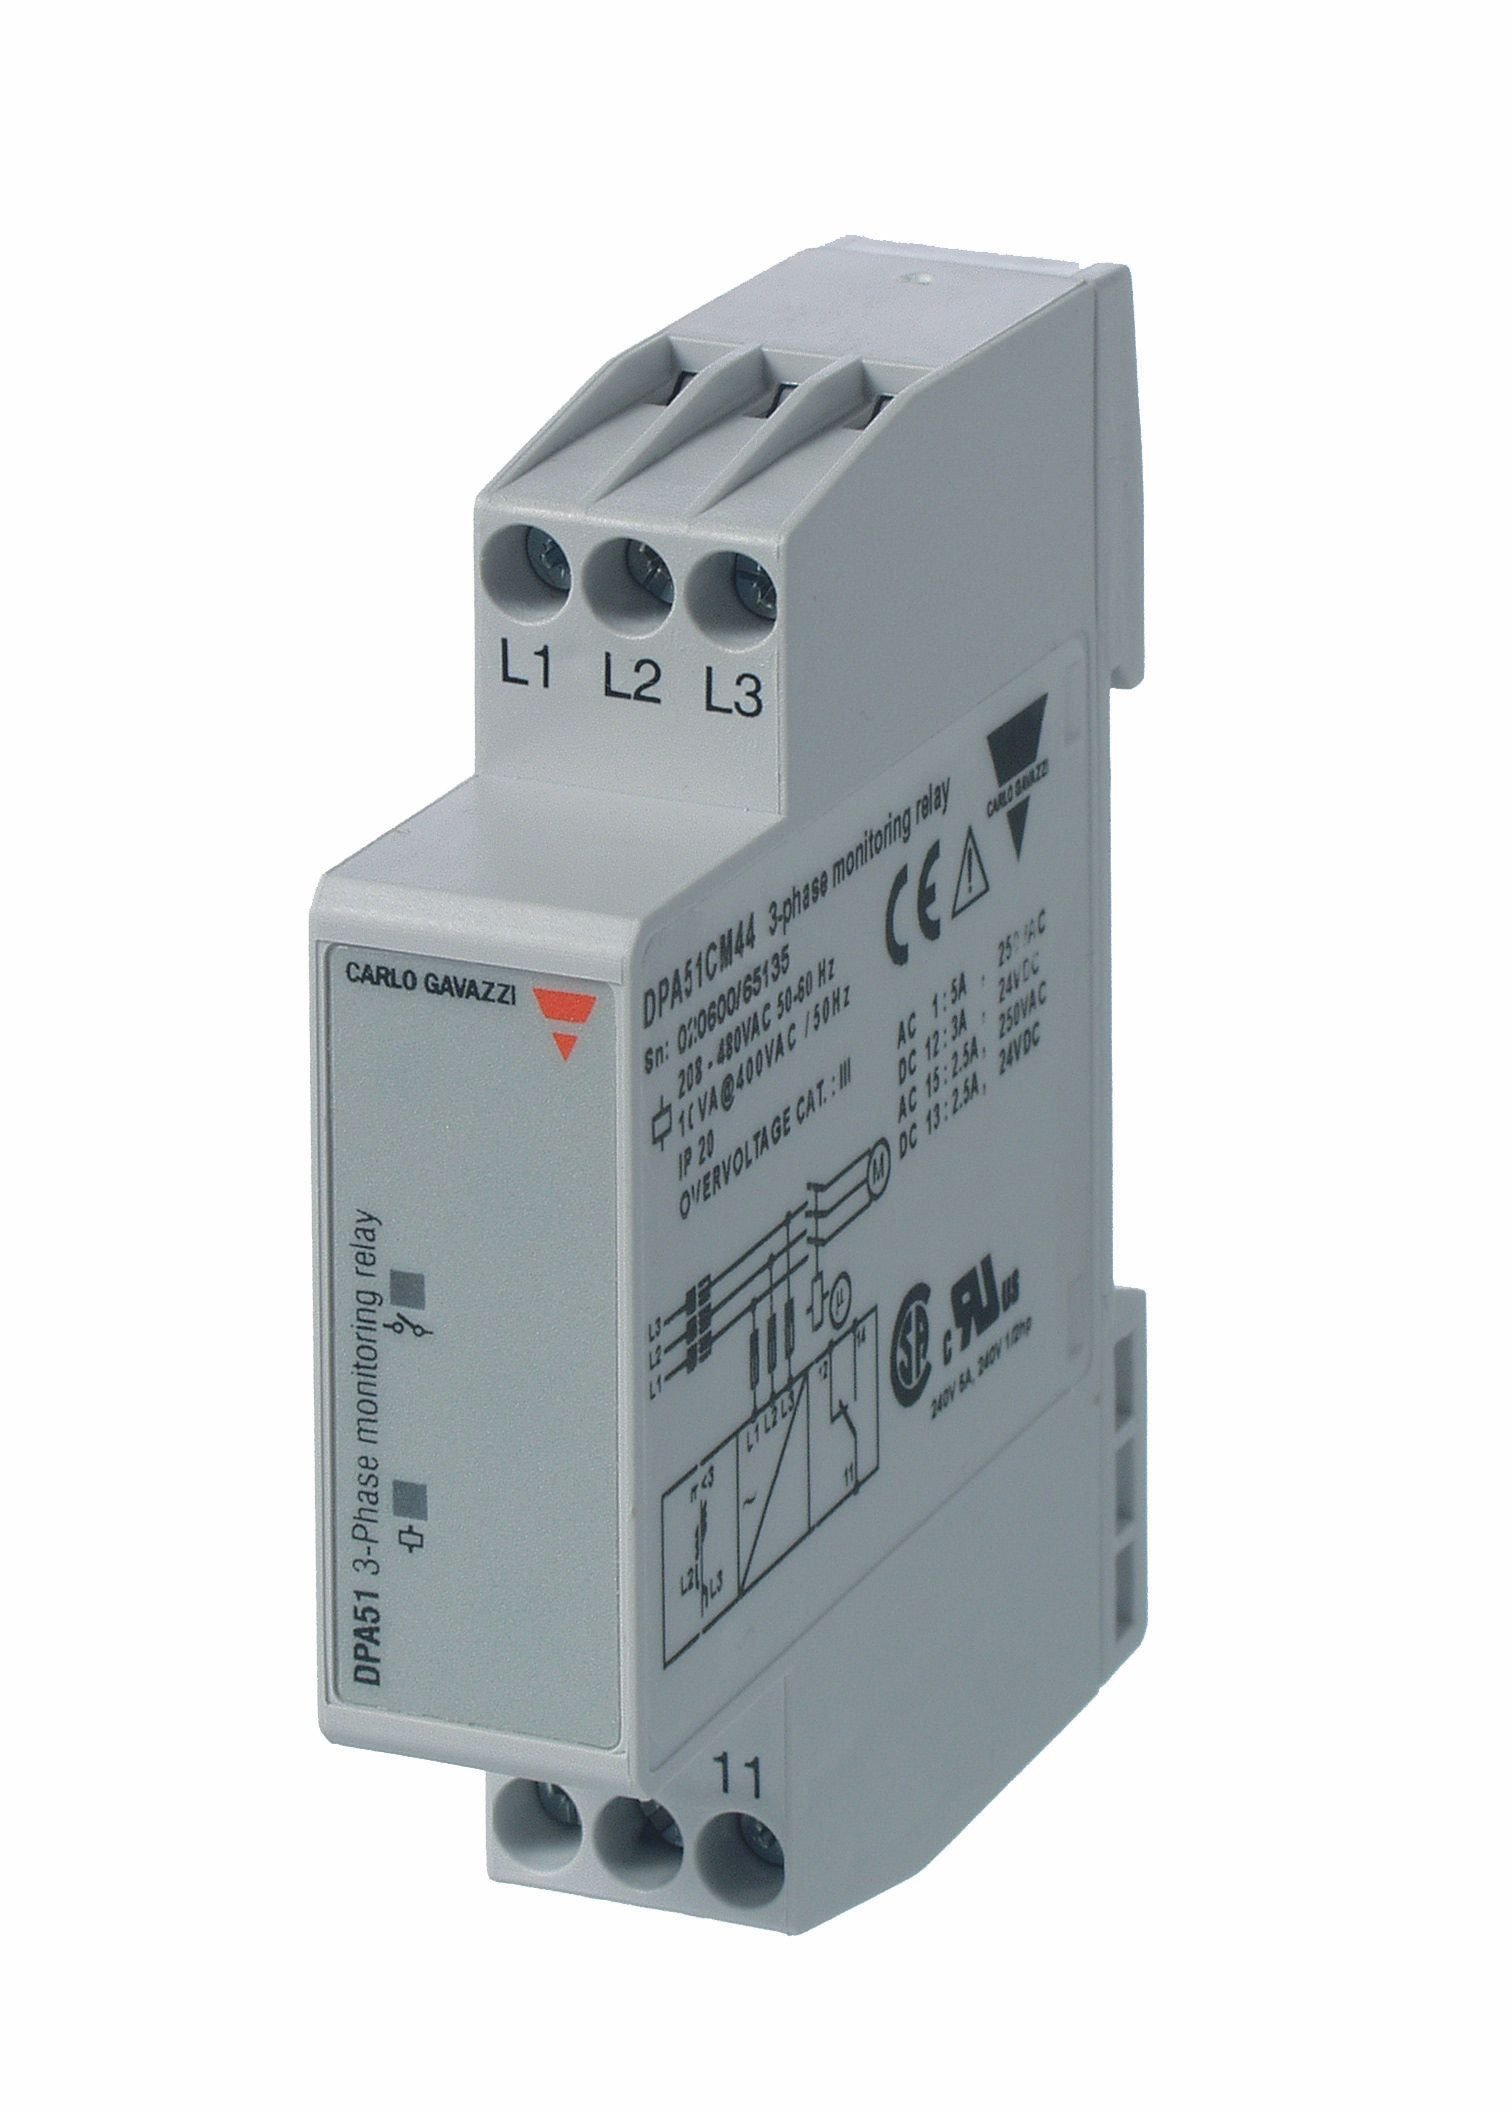 CARLO GAVAZZI DPA51CM44 Mini 3-Phase Loss/Sequence Monitor, Slim 17.5 mm Width, 208-480 VAC Monitoring, SPDT 5 amp Contact Output, Diagnostic LEDs, 2.8 oz. Size, 24 mm Height x 99 mm Width x 73 mm Diameter by CARLO GAVAZZI